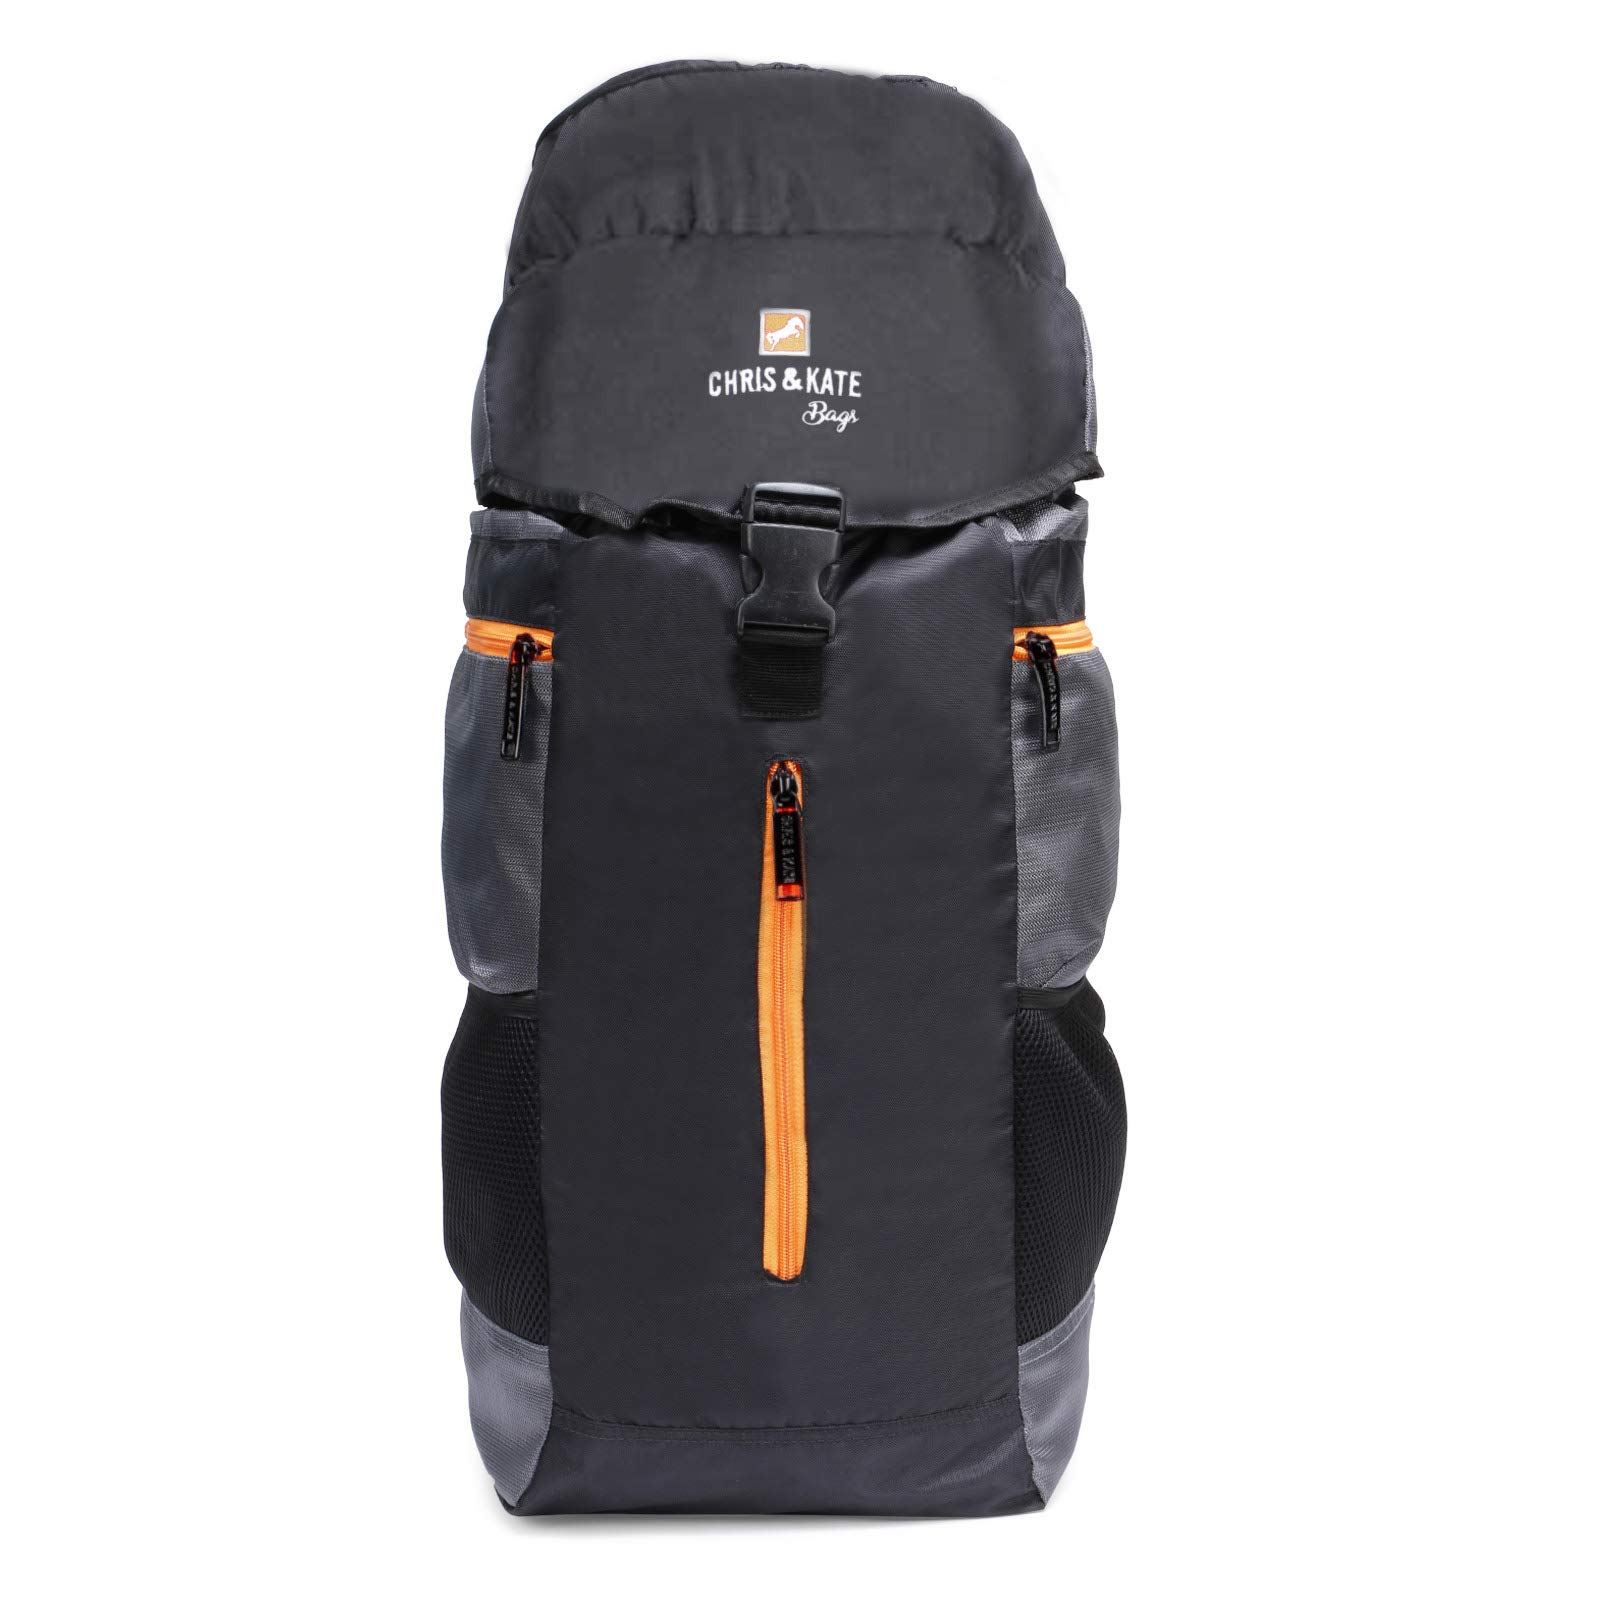 Chris & Kate Black Travel Rucksack Backpack-Trekking Backpacks-Camping Daypack Bag (CKB_205KF) (B07MTC14BY) Amazon Price History, Amazon Price Tracker